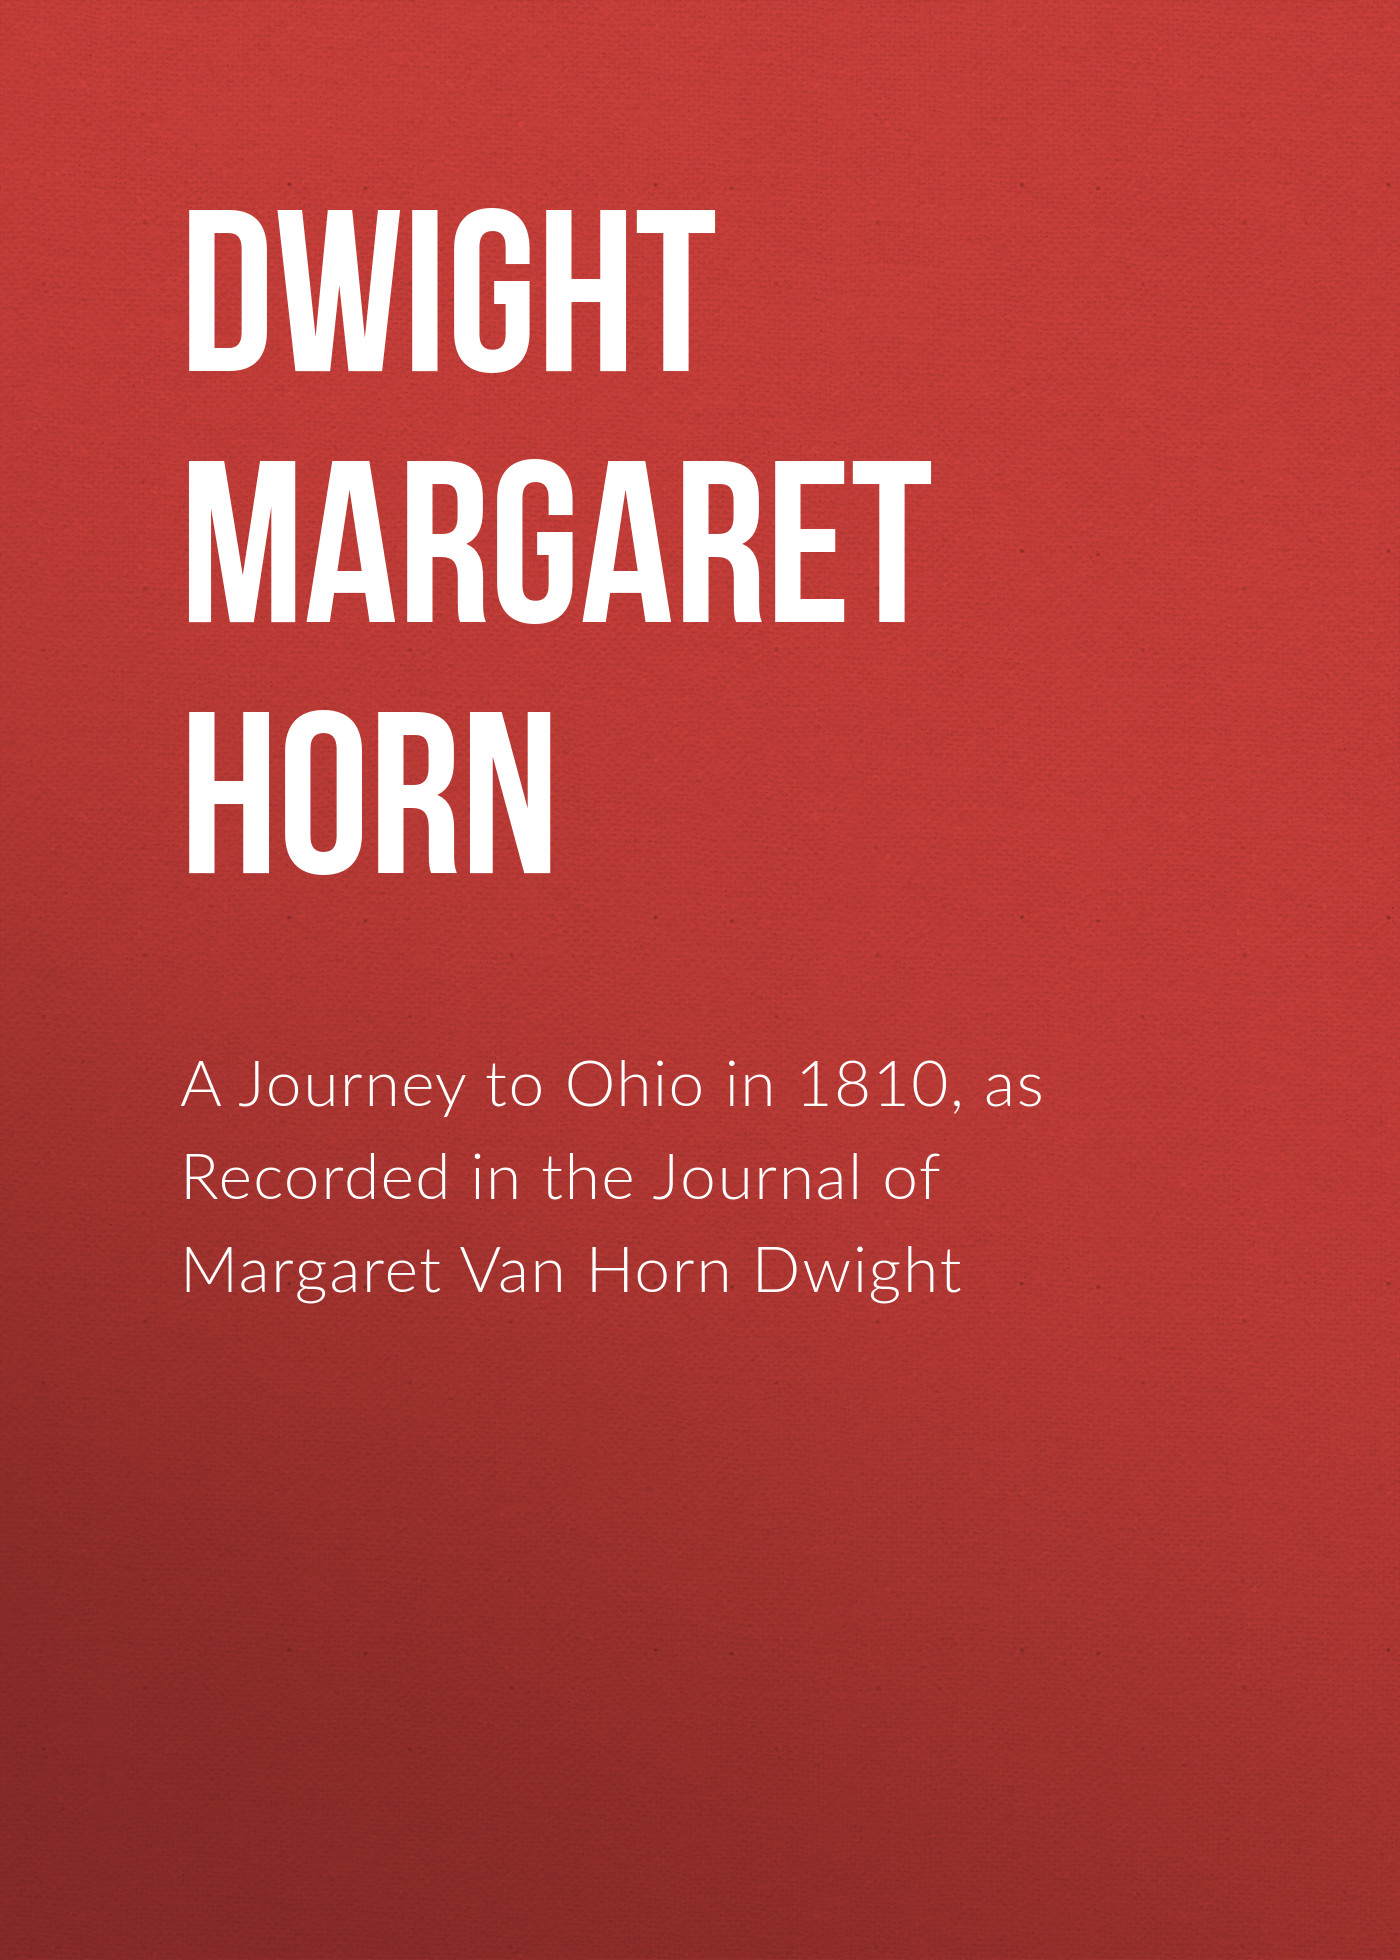 Dwight Margaret Van Horn A Journey to Ohio in 1810, as Recorded in the Journal of Margaret Van Horn Dwight 12v loud horn siren 5 sounds tone pa system 60w max 300db for car auto van truck